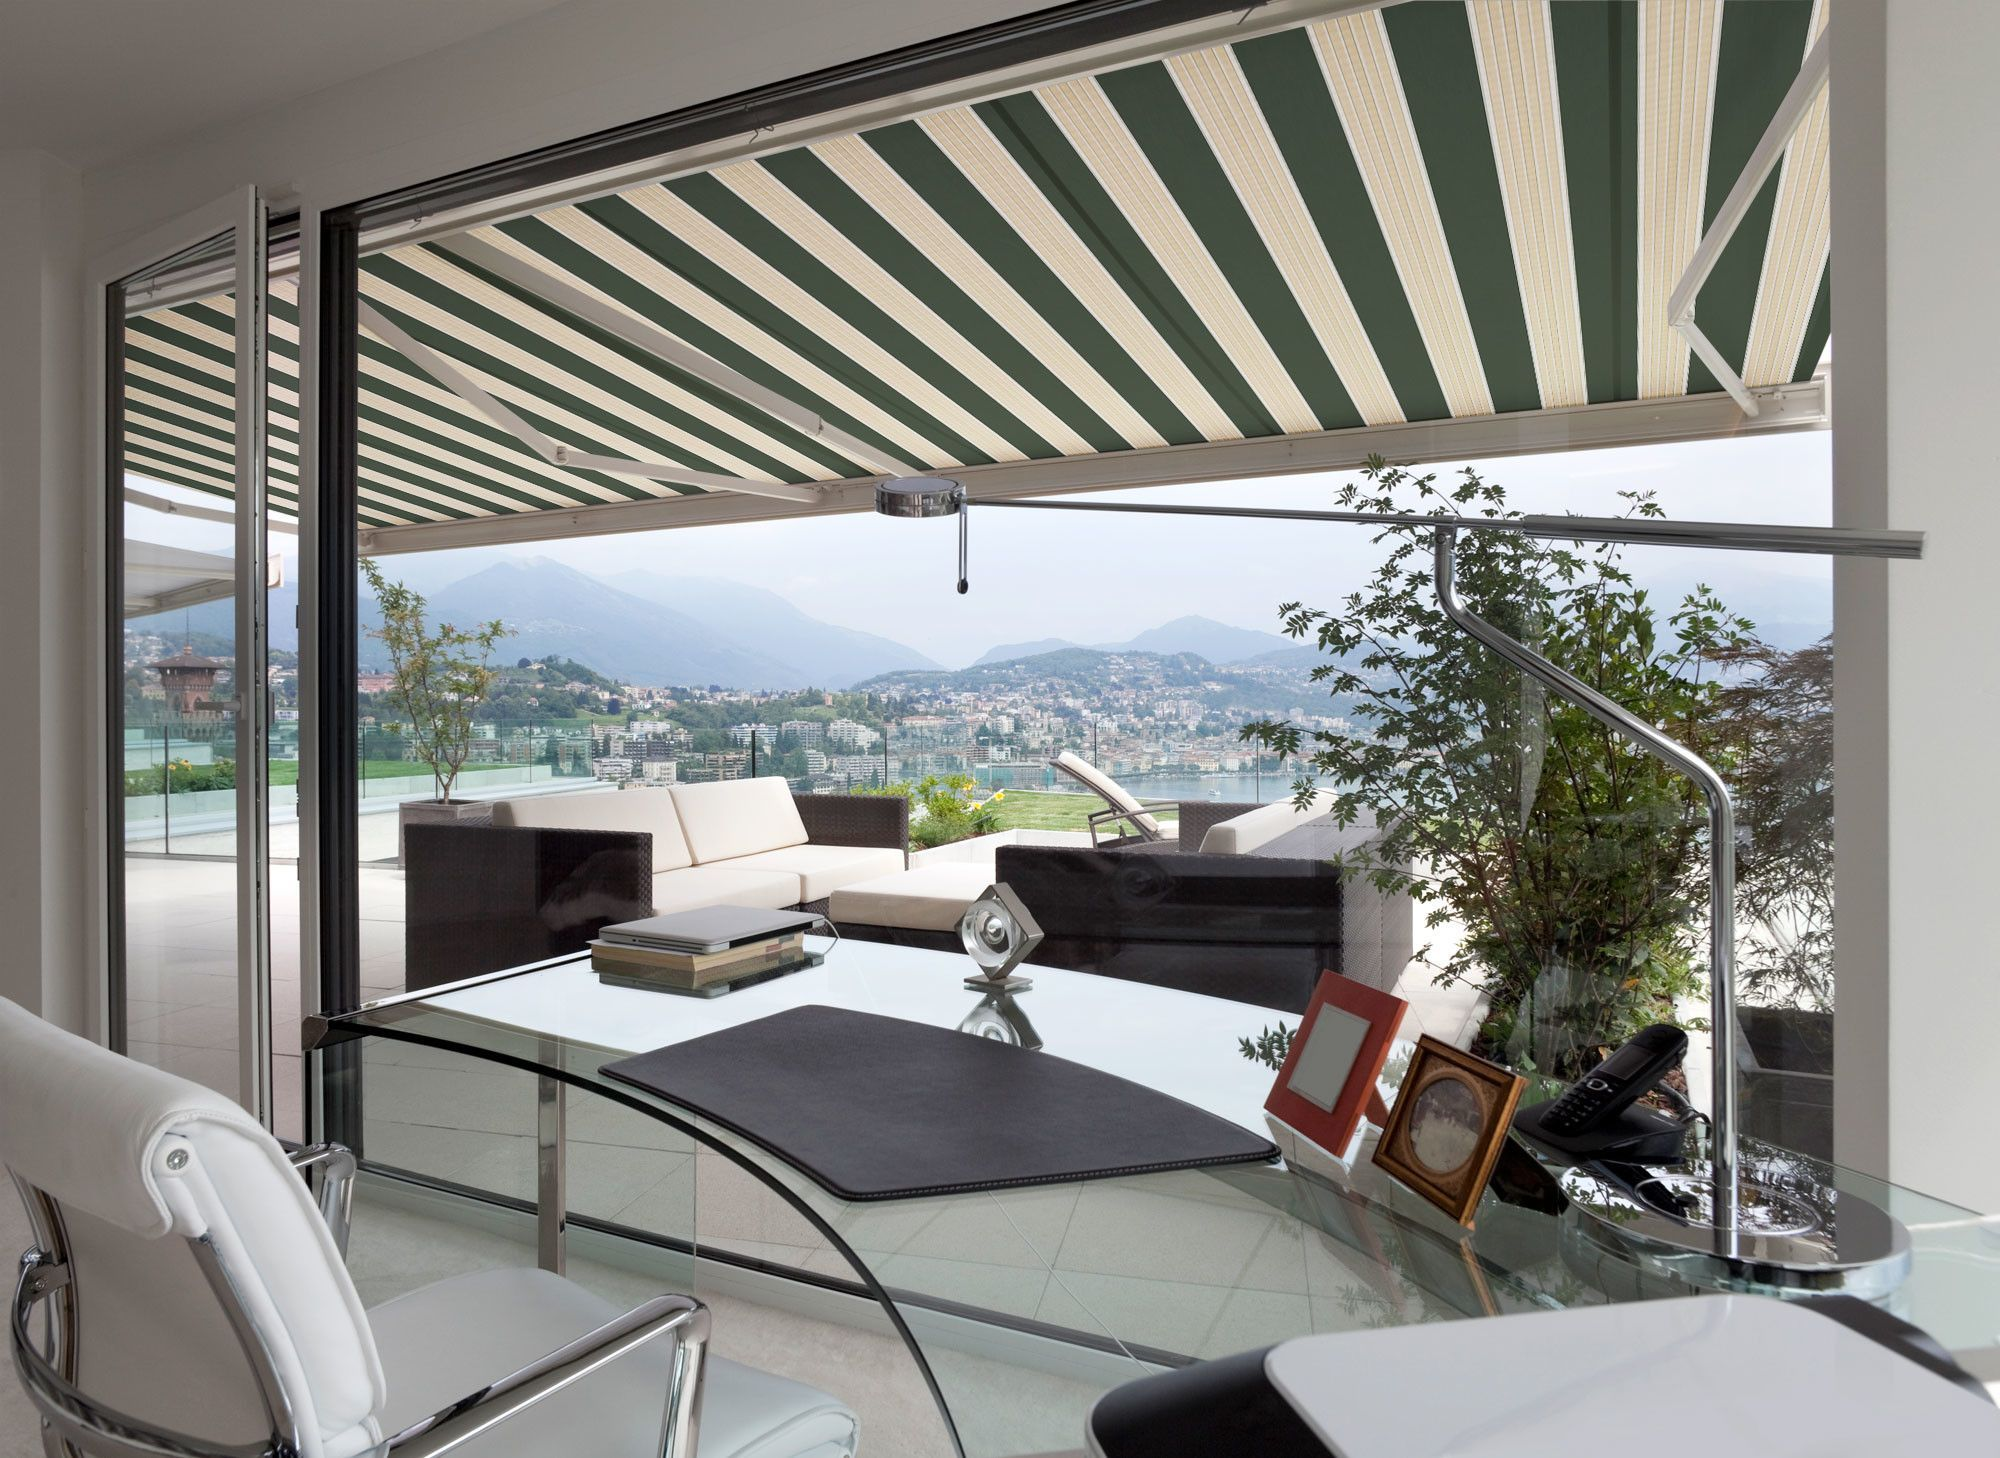 Luxury Series Retractable Patio Awning Products Patio Canopy